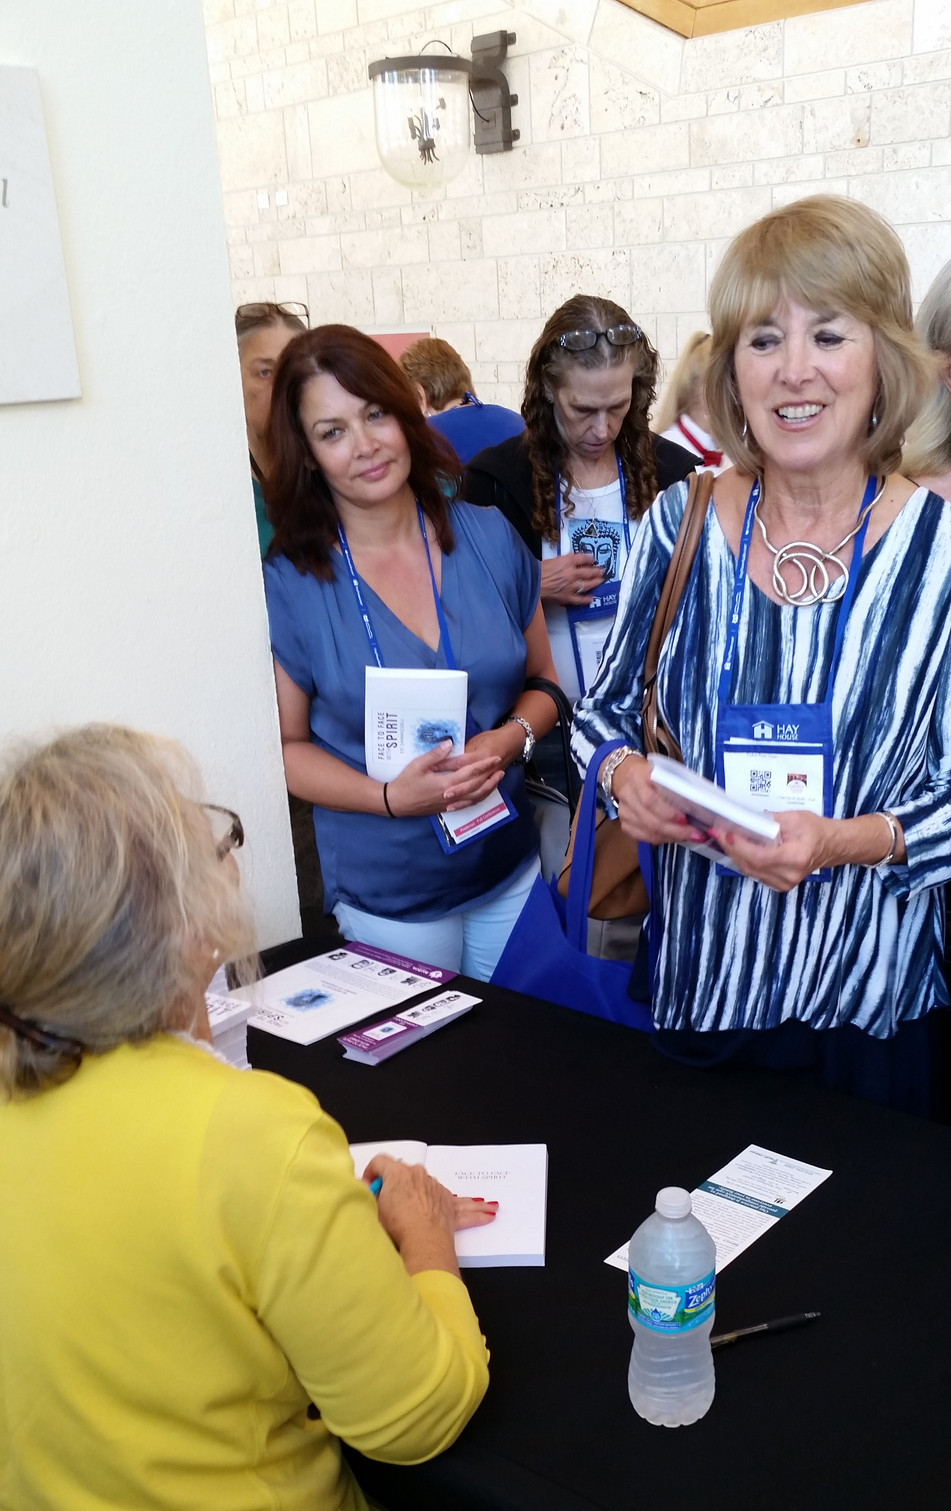 MY FIRST BOOK SIGNING IN FLORIDA, USA